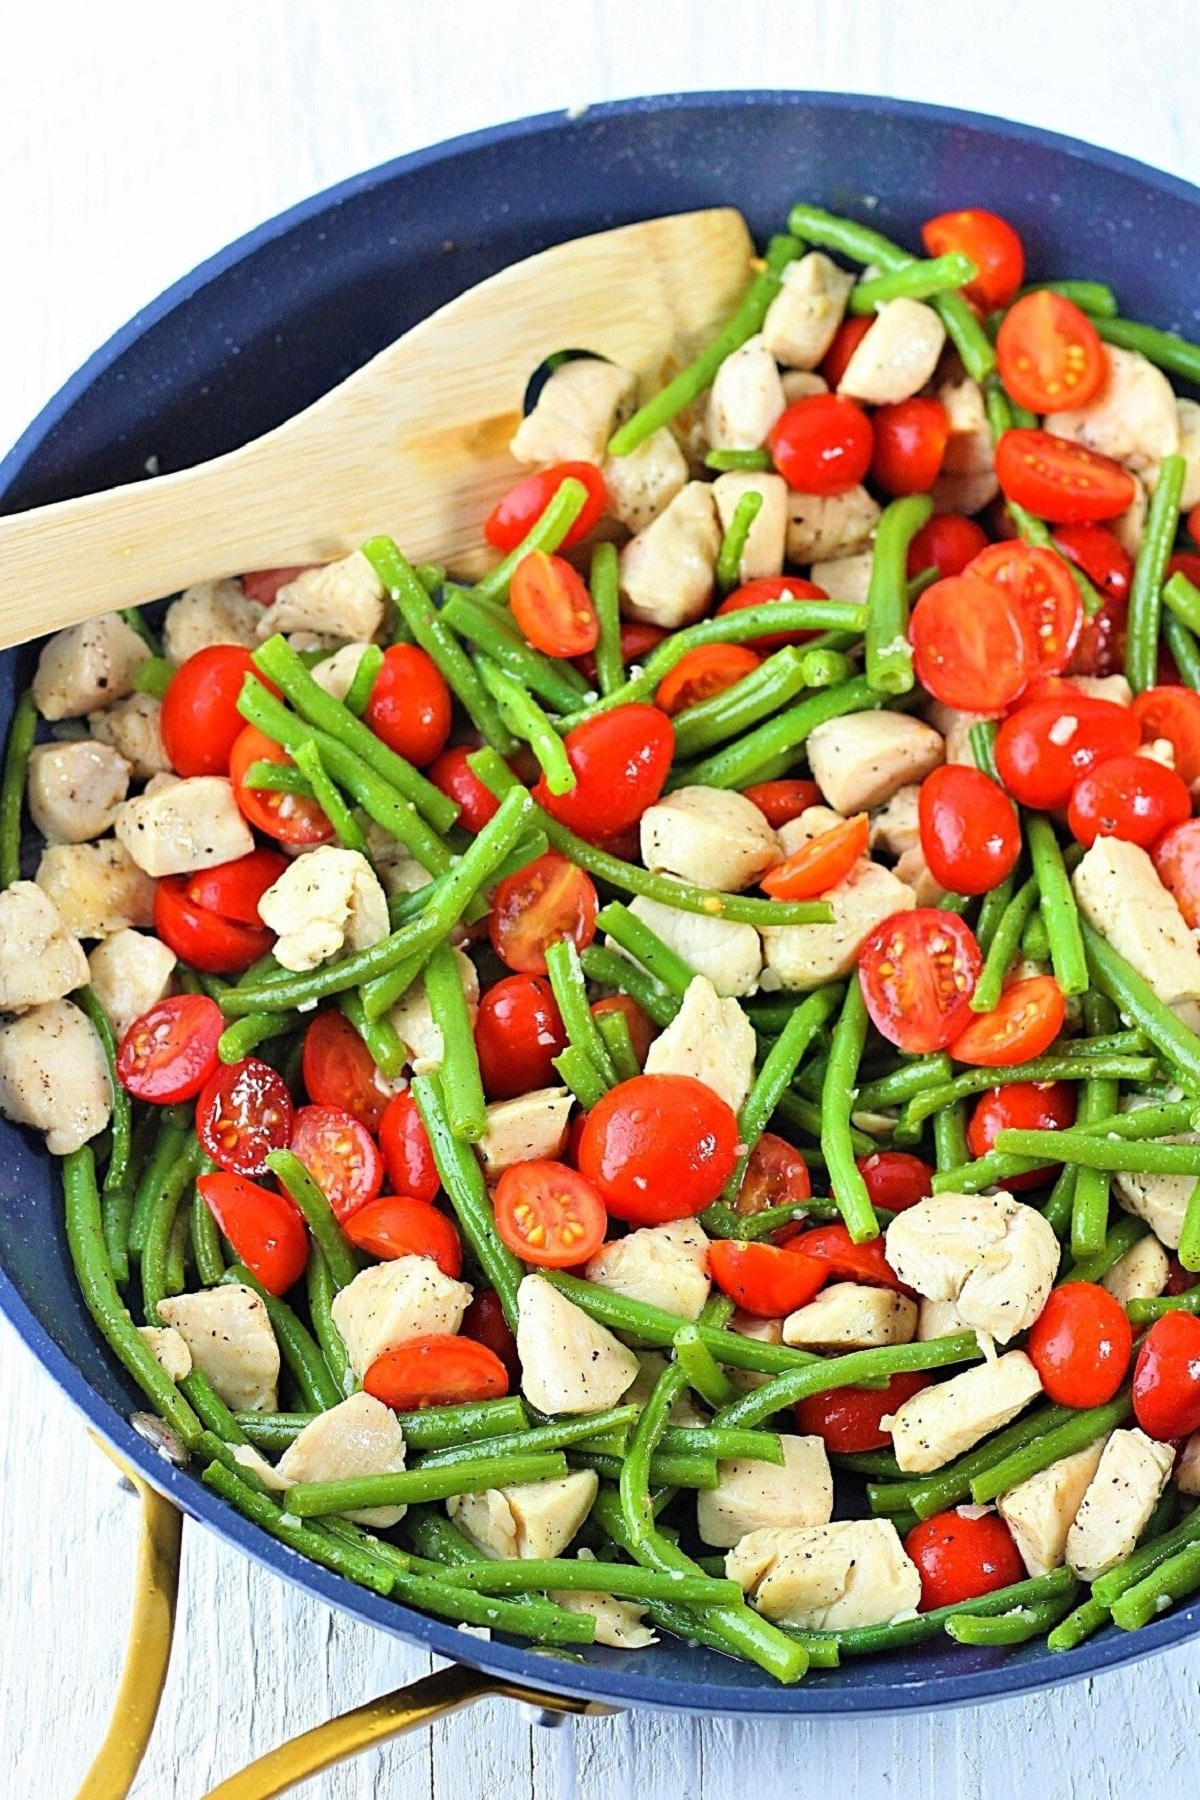 garlic chicken with green beans and tomatoes in a skillet